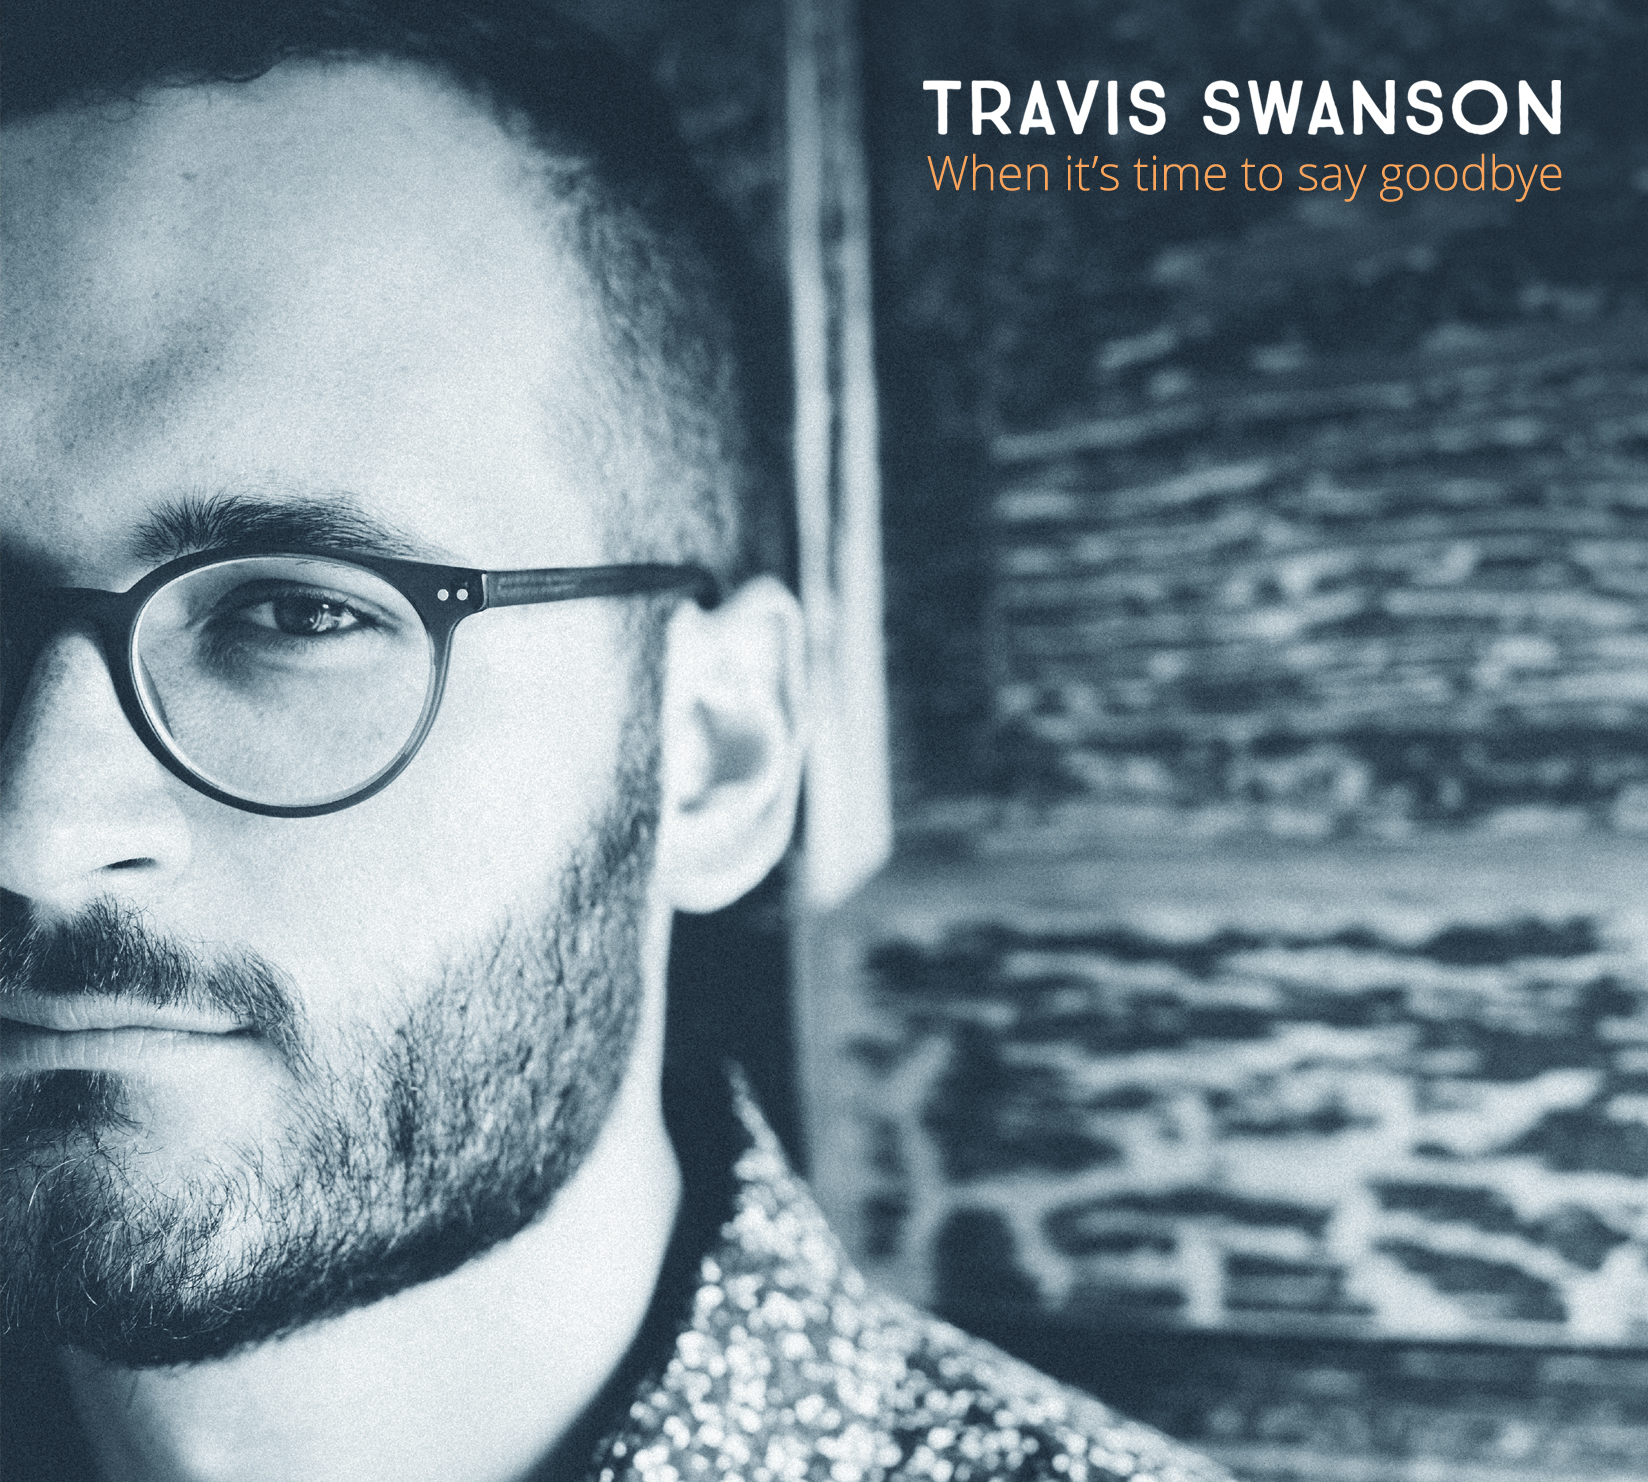 Travis Swanson - When it's time to say goodbye